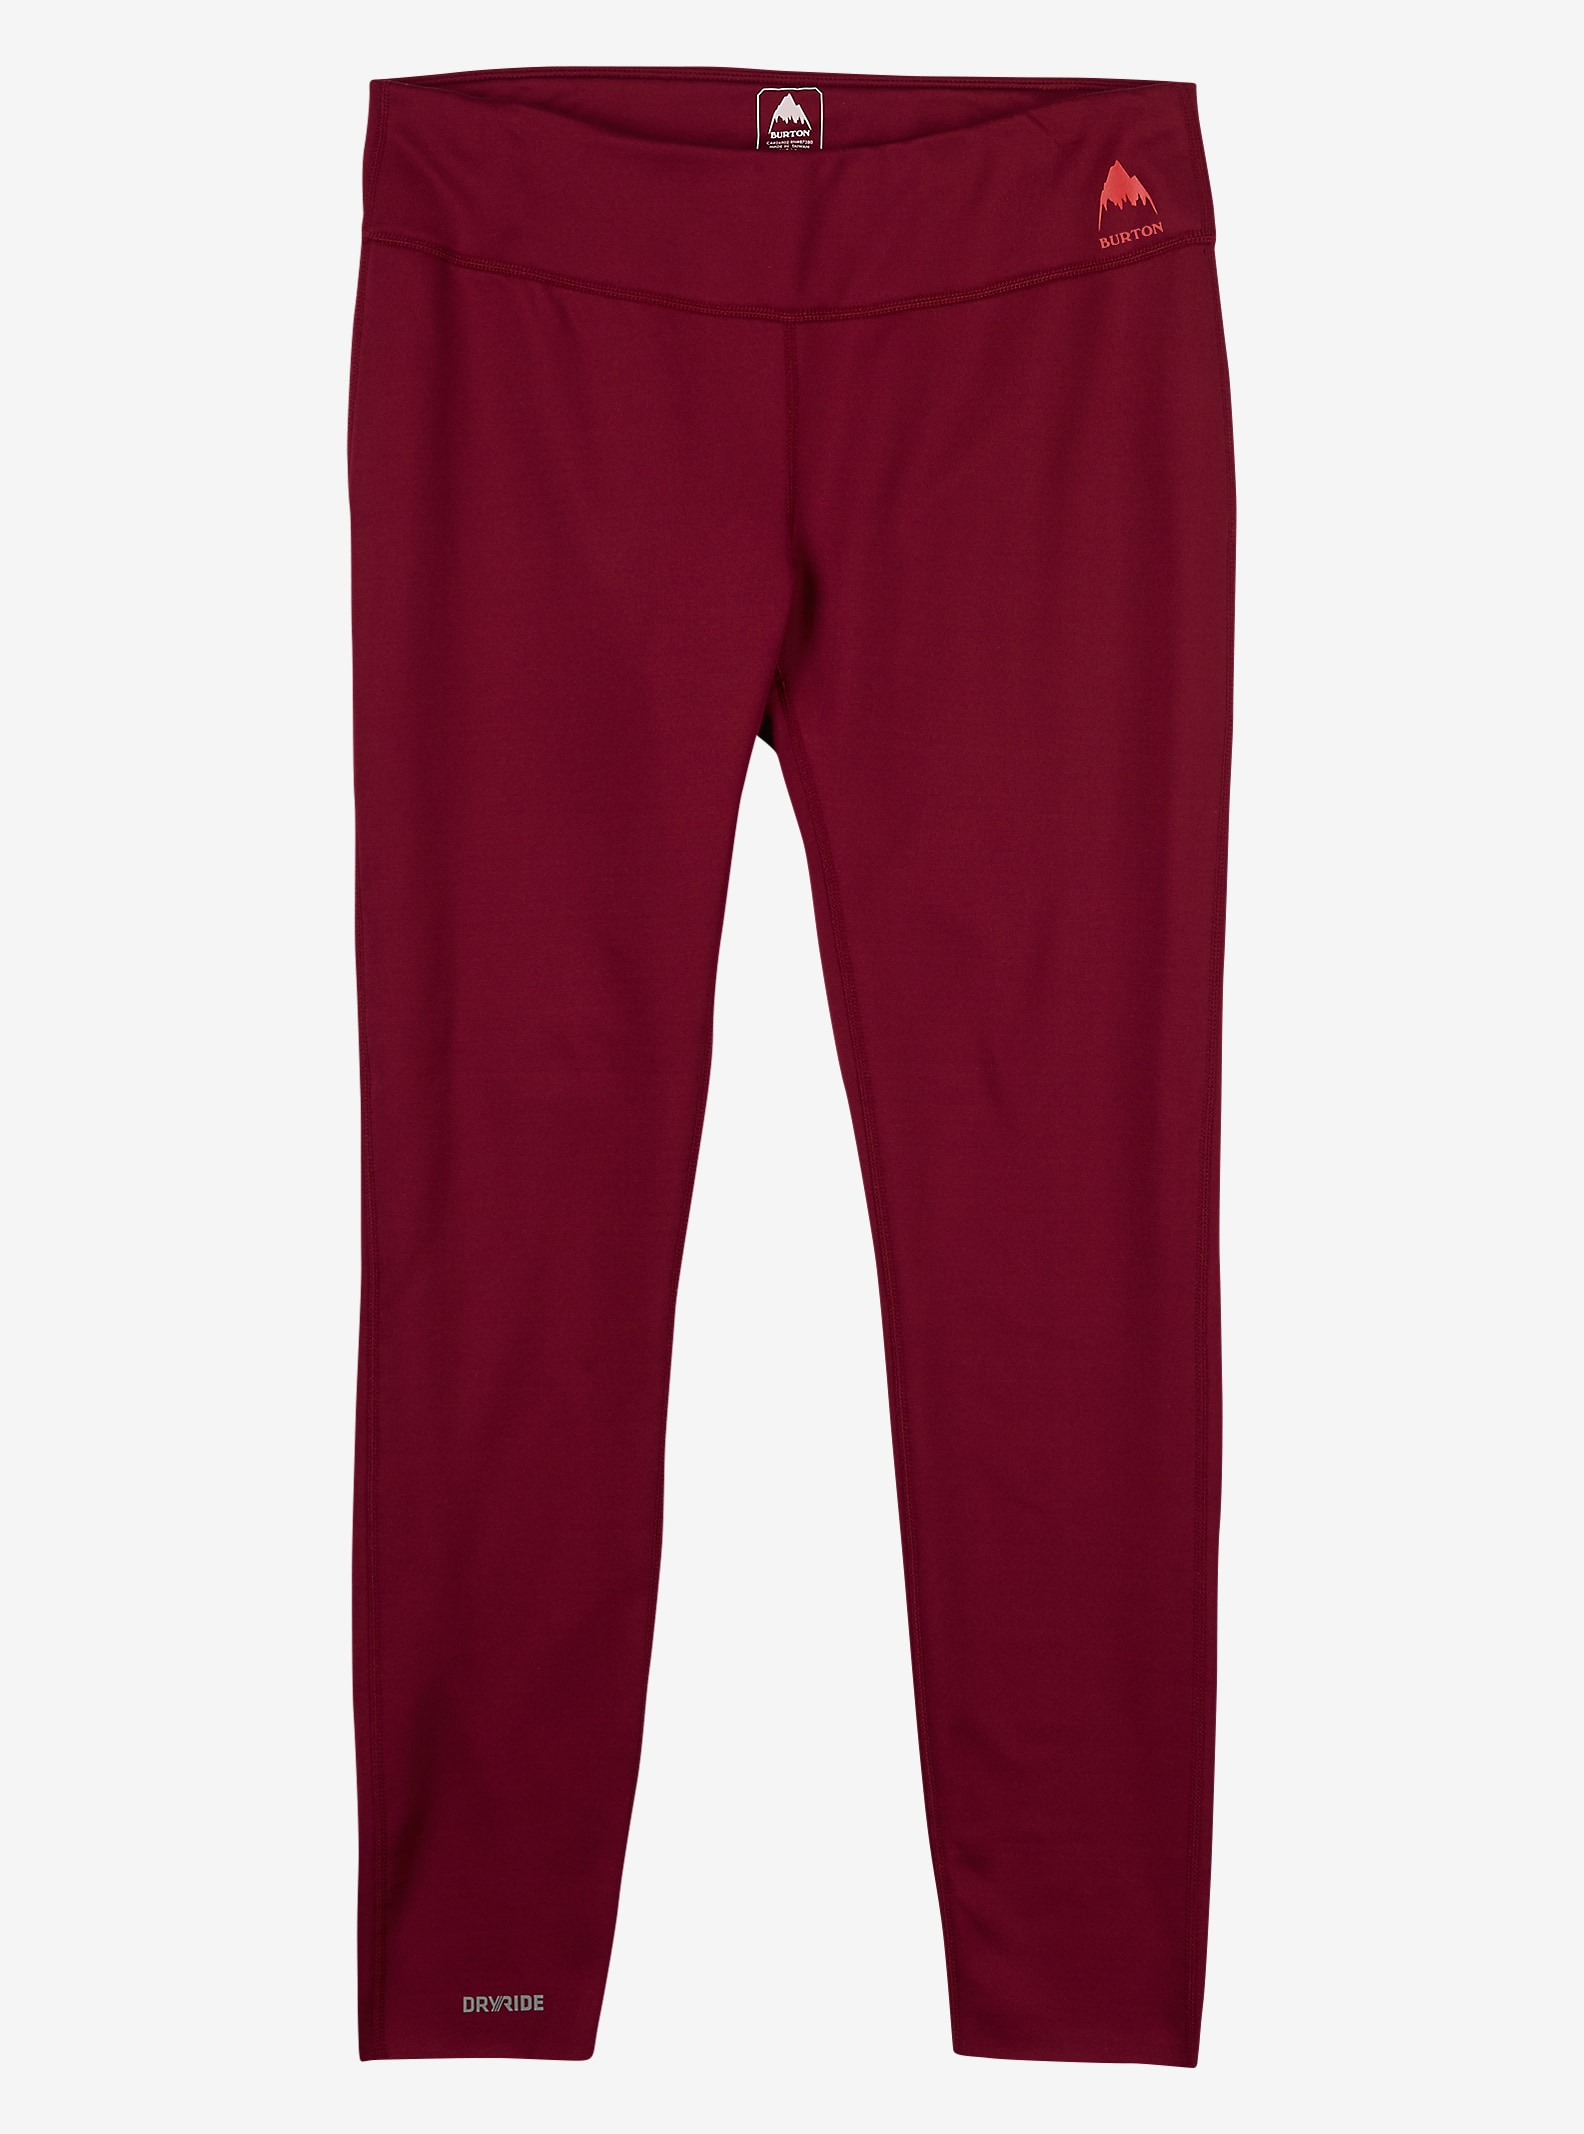 Burton Women's Expedition Base Layer Pant shown in Sangria